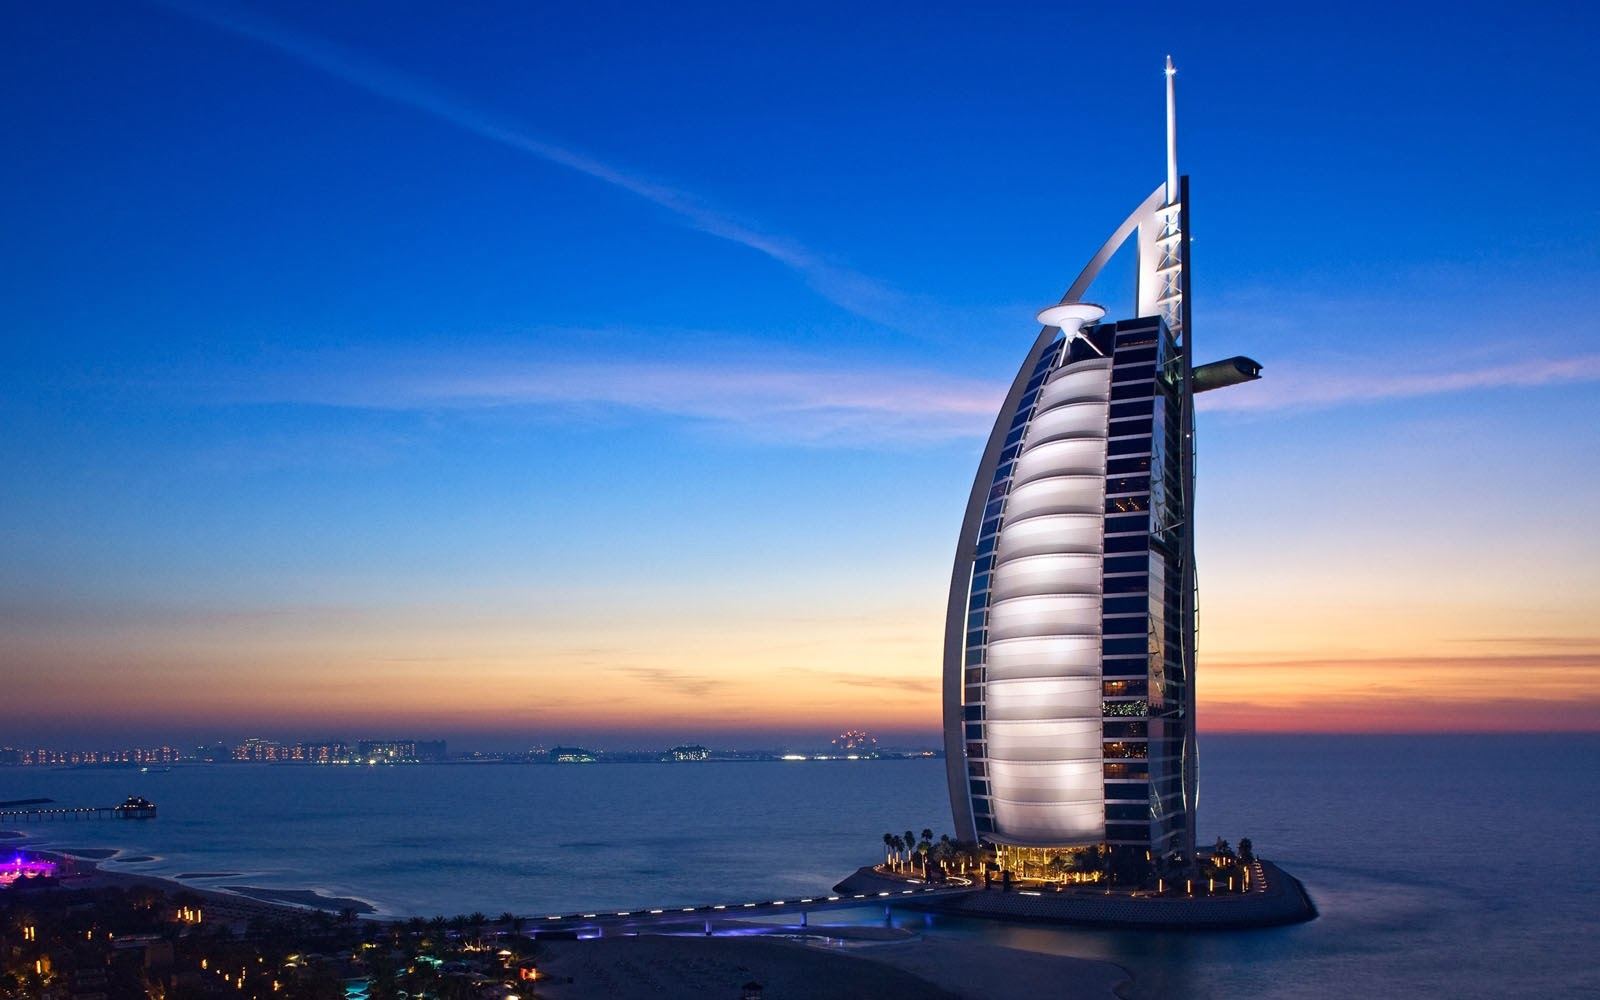 Wallpapers burj al arab hotel wallpapers for Burj arab dubai